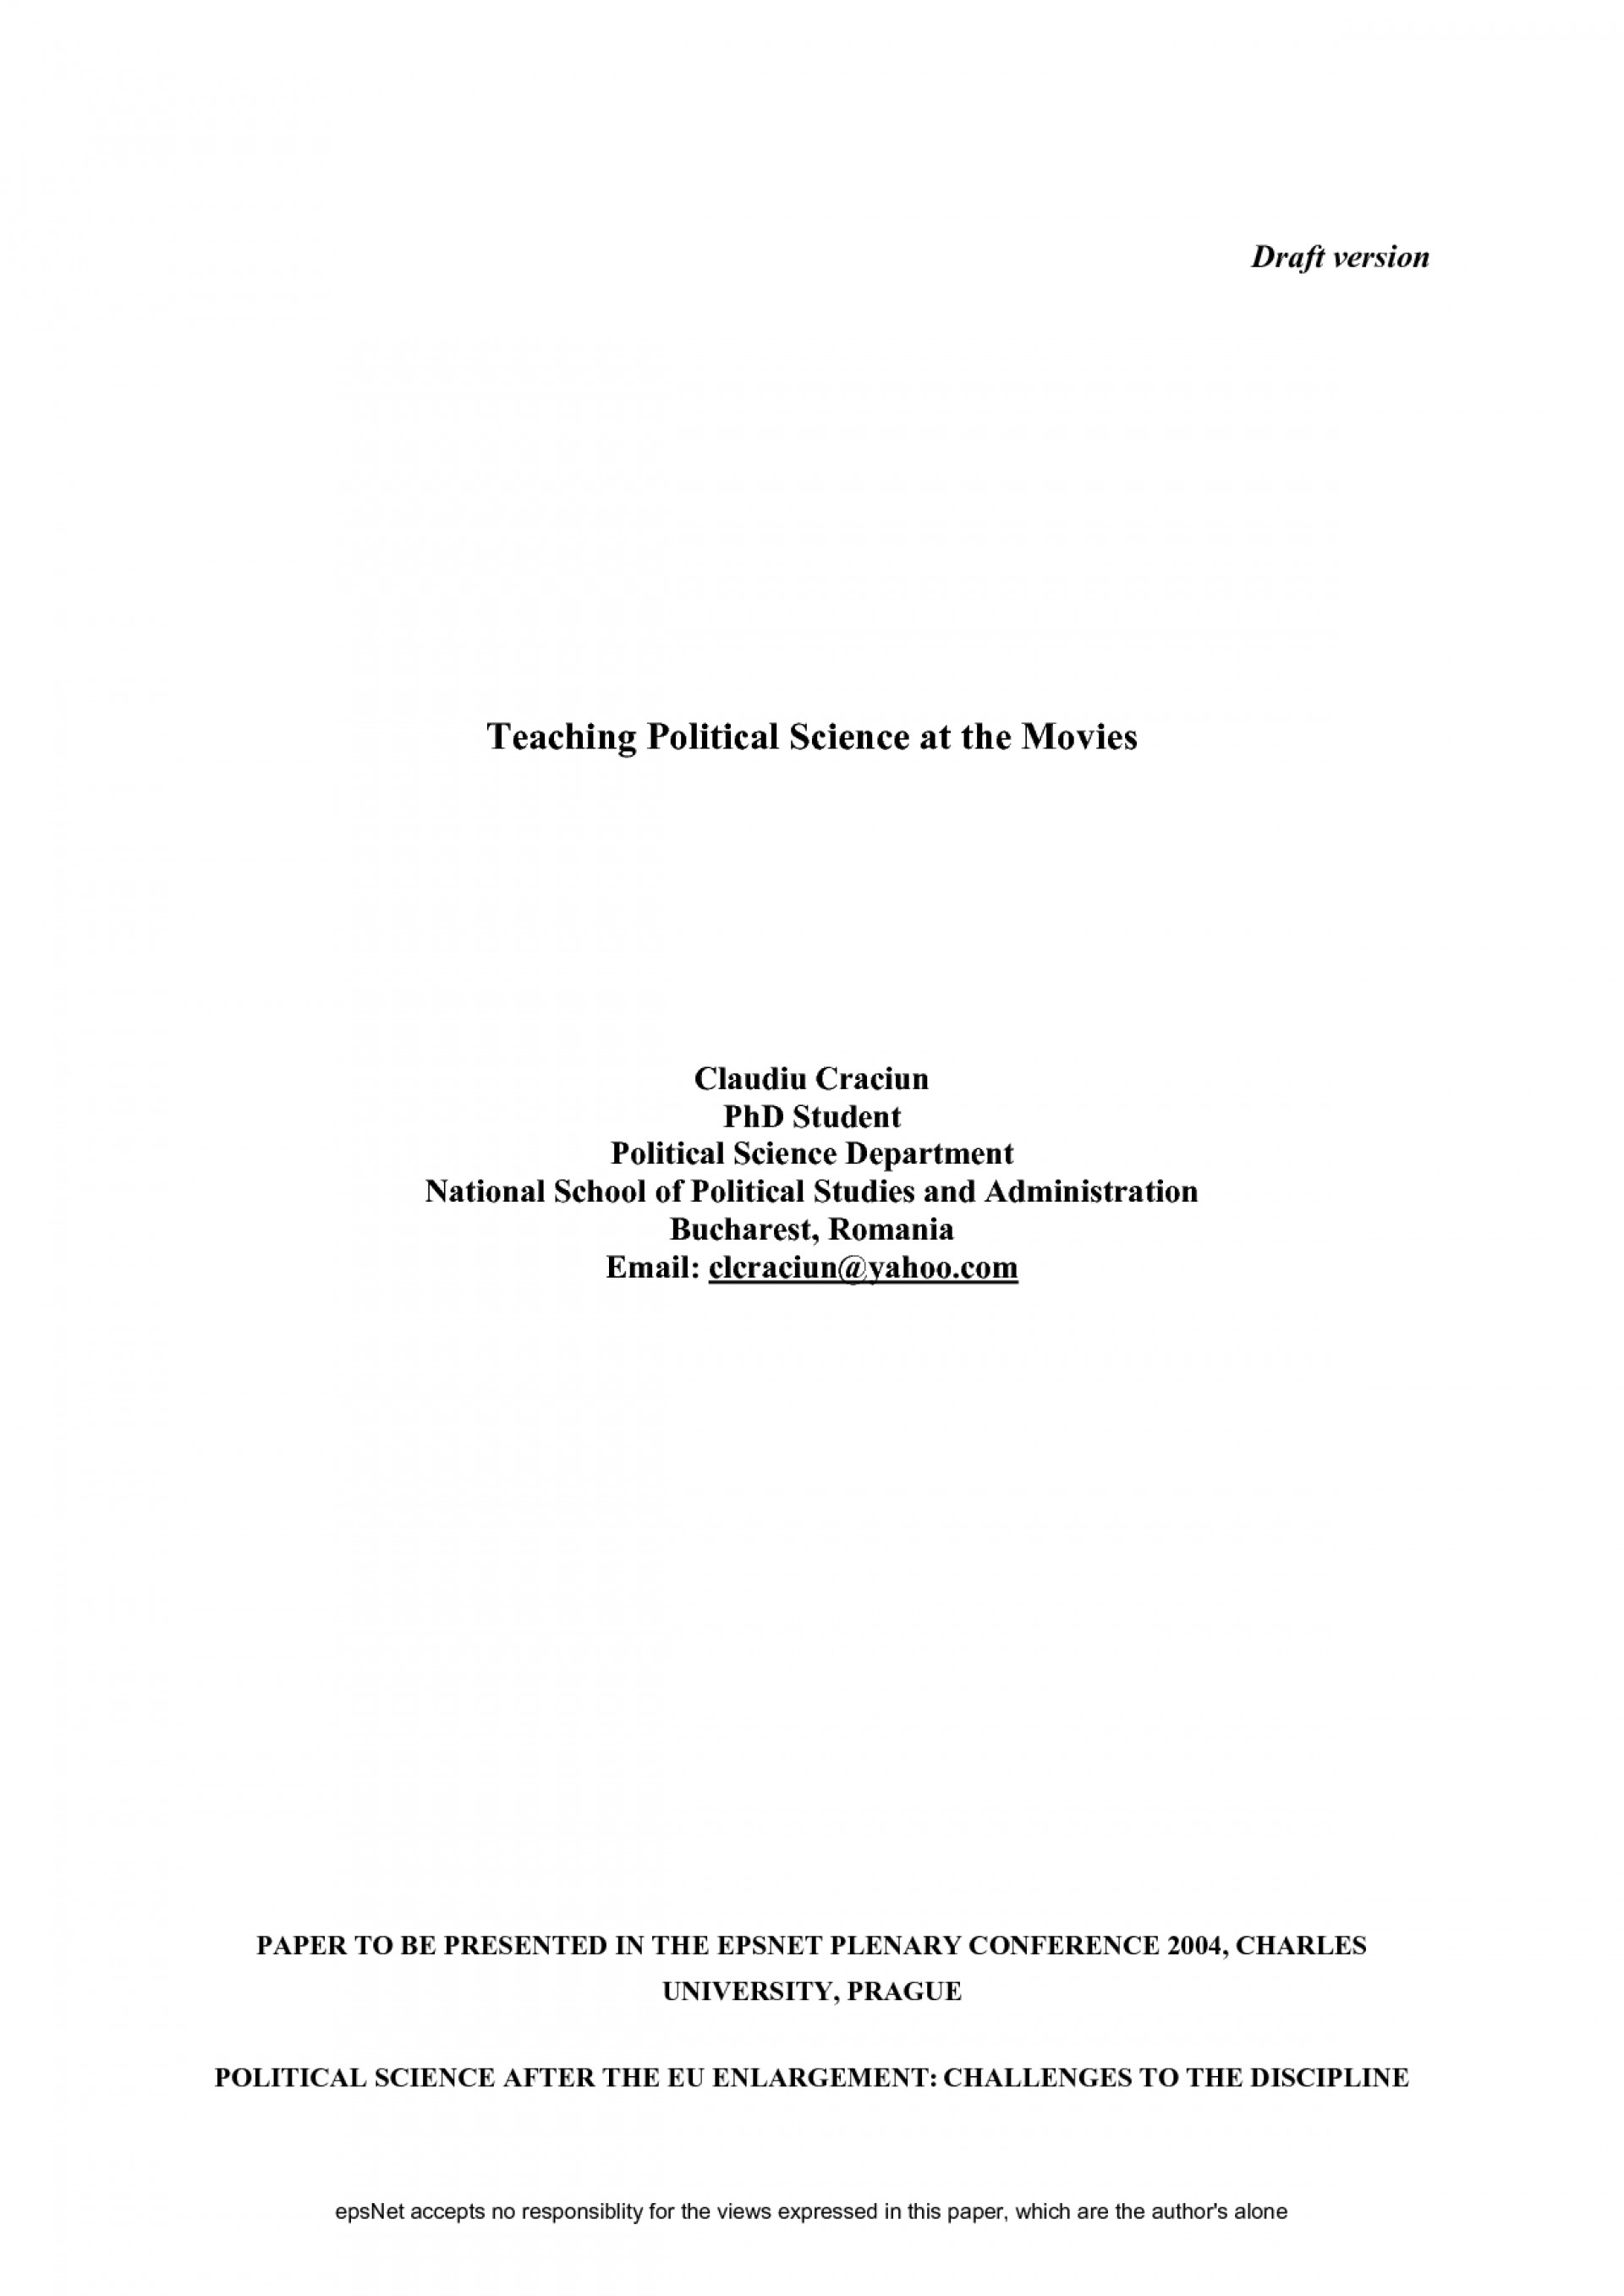 019 Research Paper Apsa Example Cover Page 319500 Template For Rare Apa Format Sample Title 1920